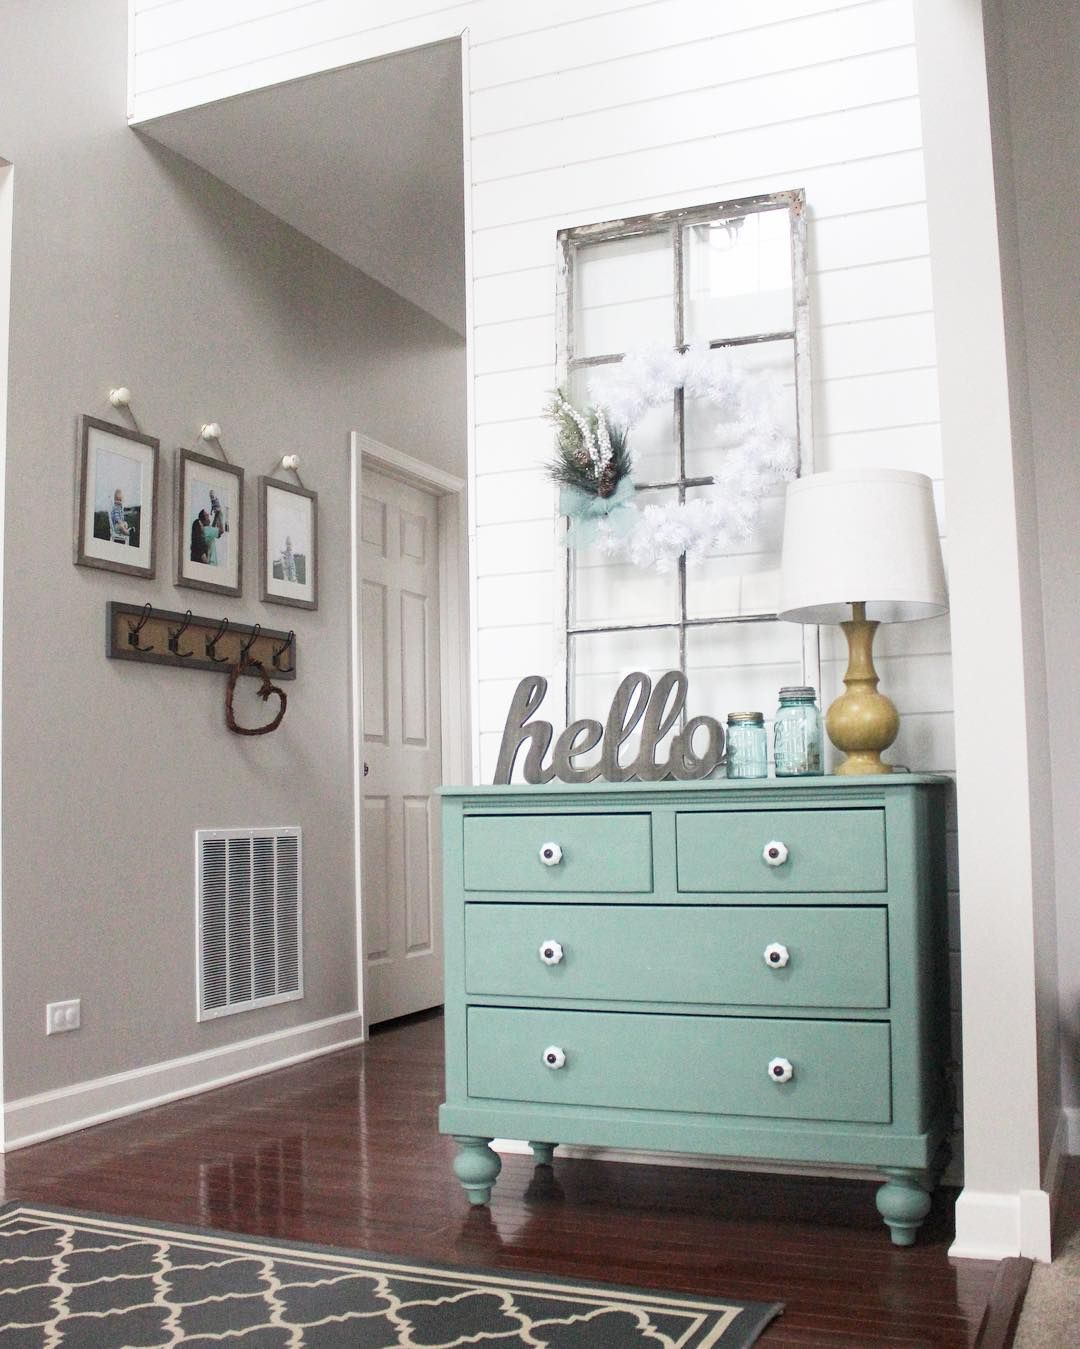 Teal hallway ideas  Colors  madterbed  Pinterest  House Future and Decorating